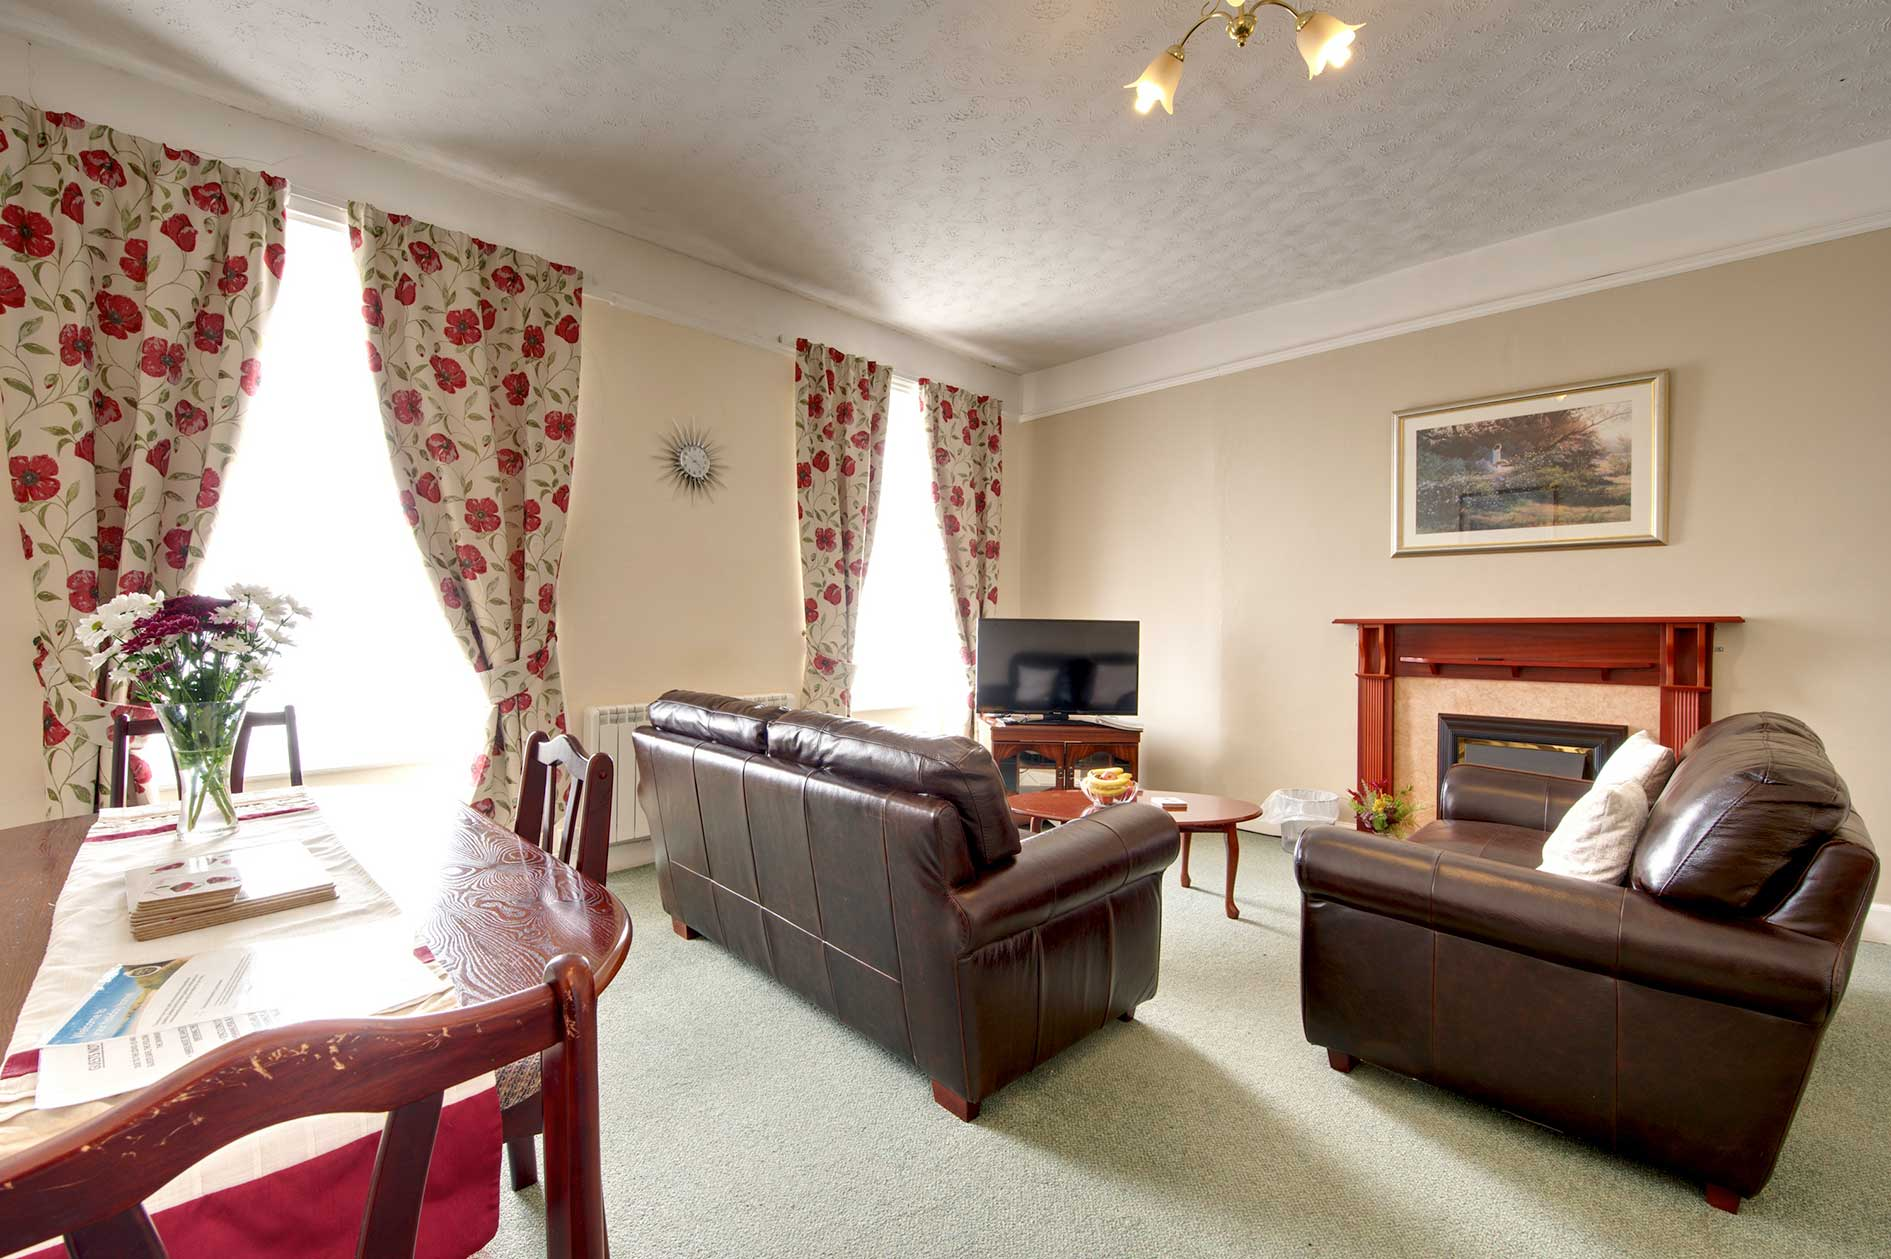 Living Room With Brown Leather Sofas And Red Floral Curtains